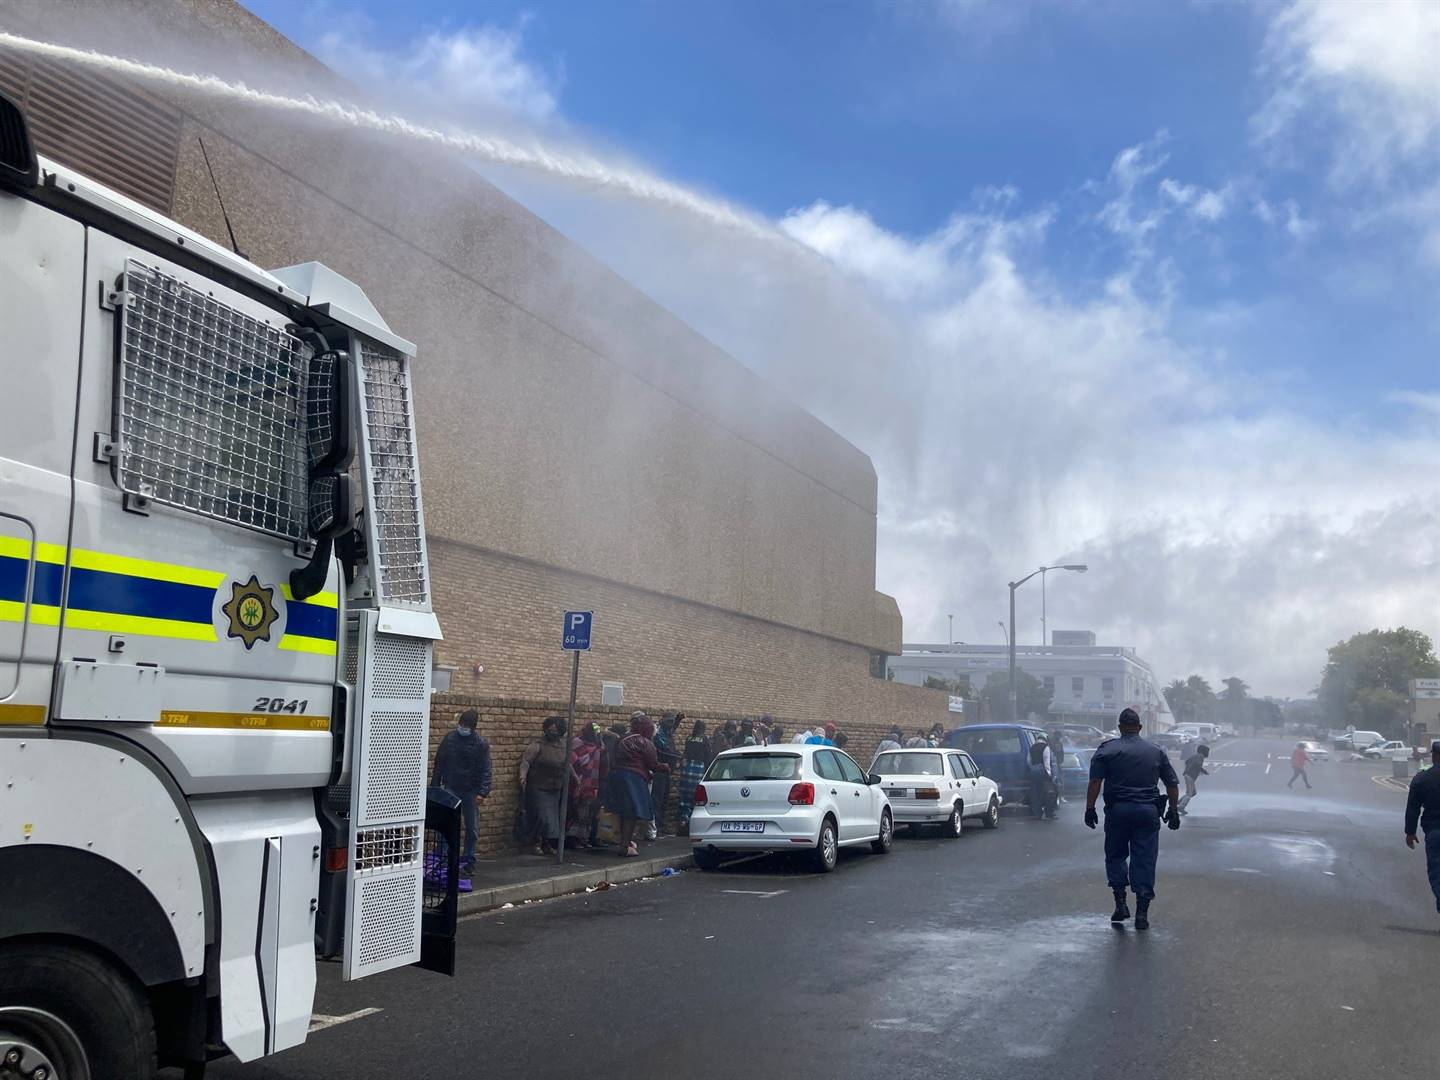 Police fire a water cannon at queueing beneficiaries outside Sassa's offices in Bellville.